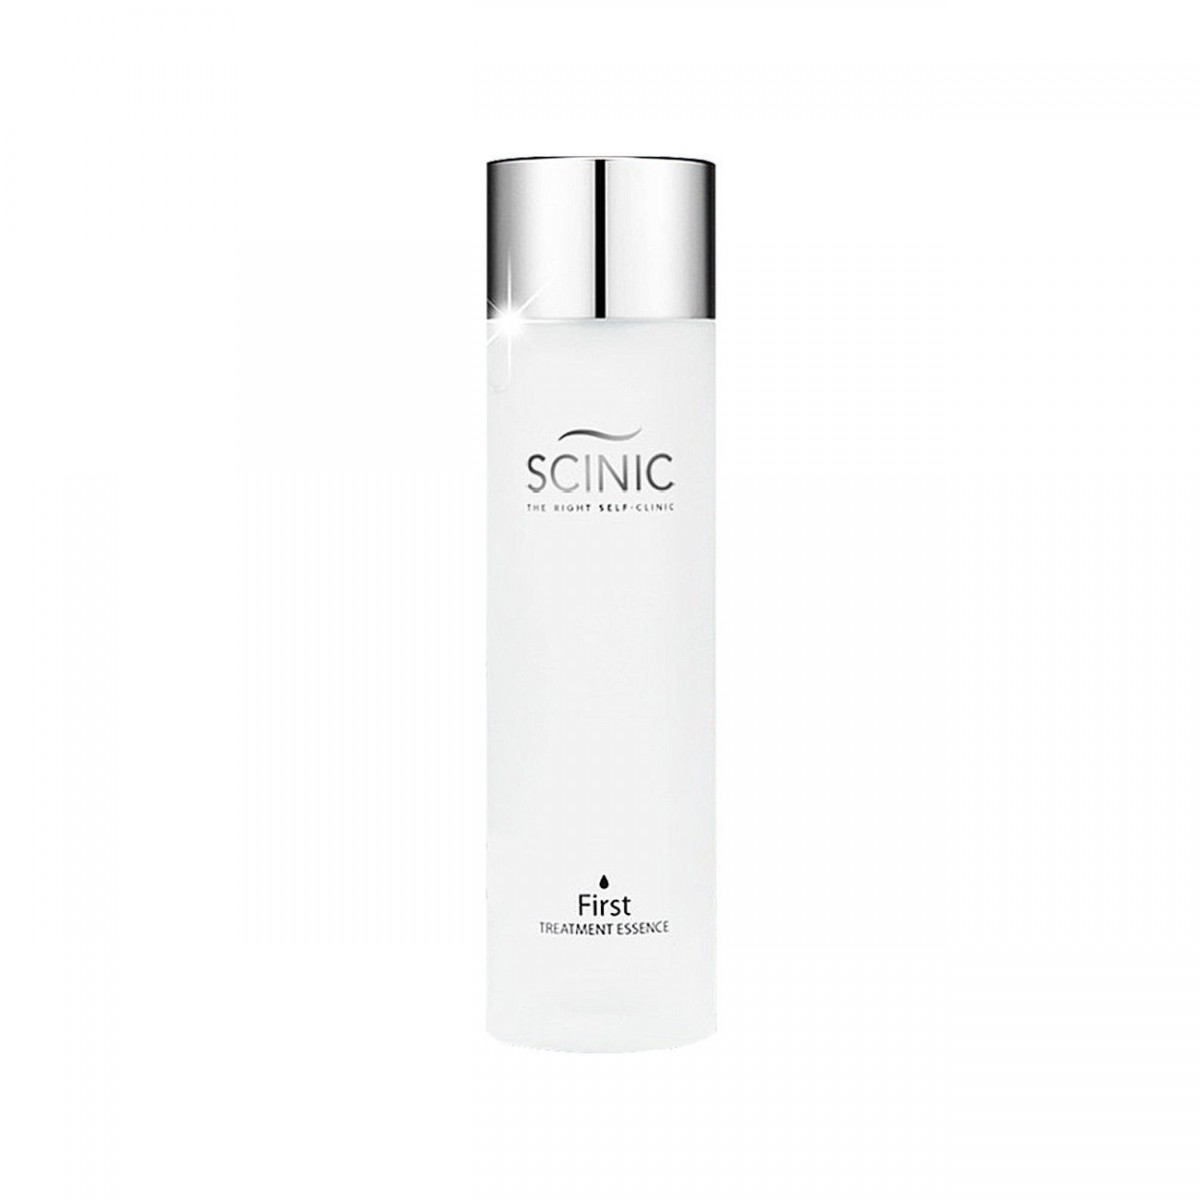 Scinic First Treatment Essence 150 ml (Galactomyces contained)